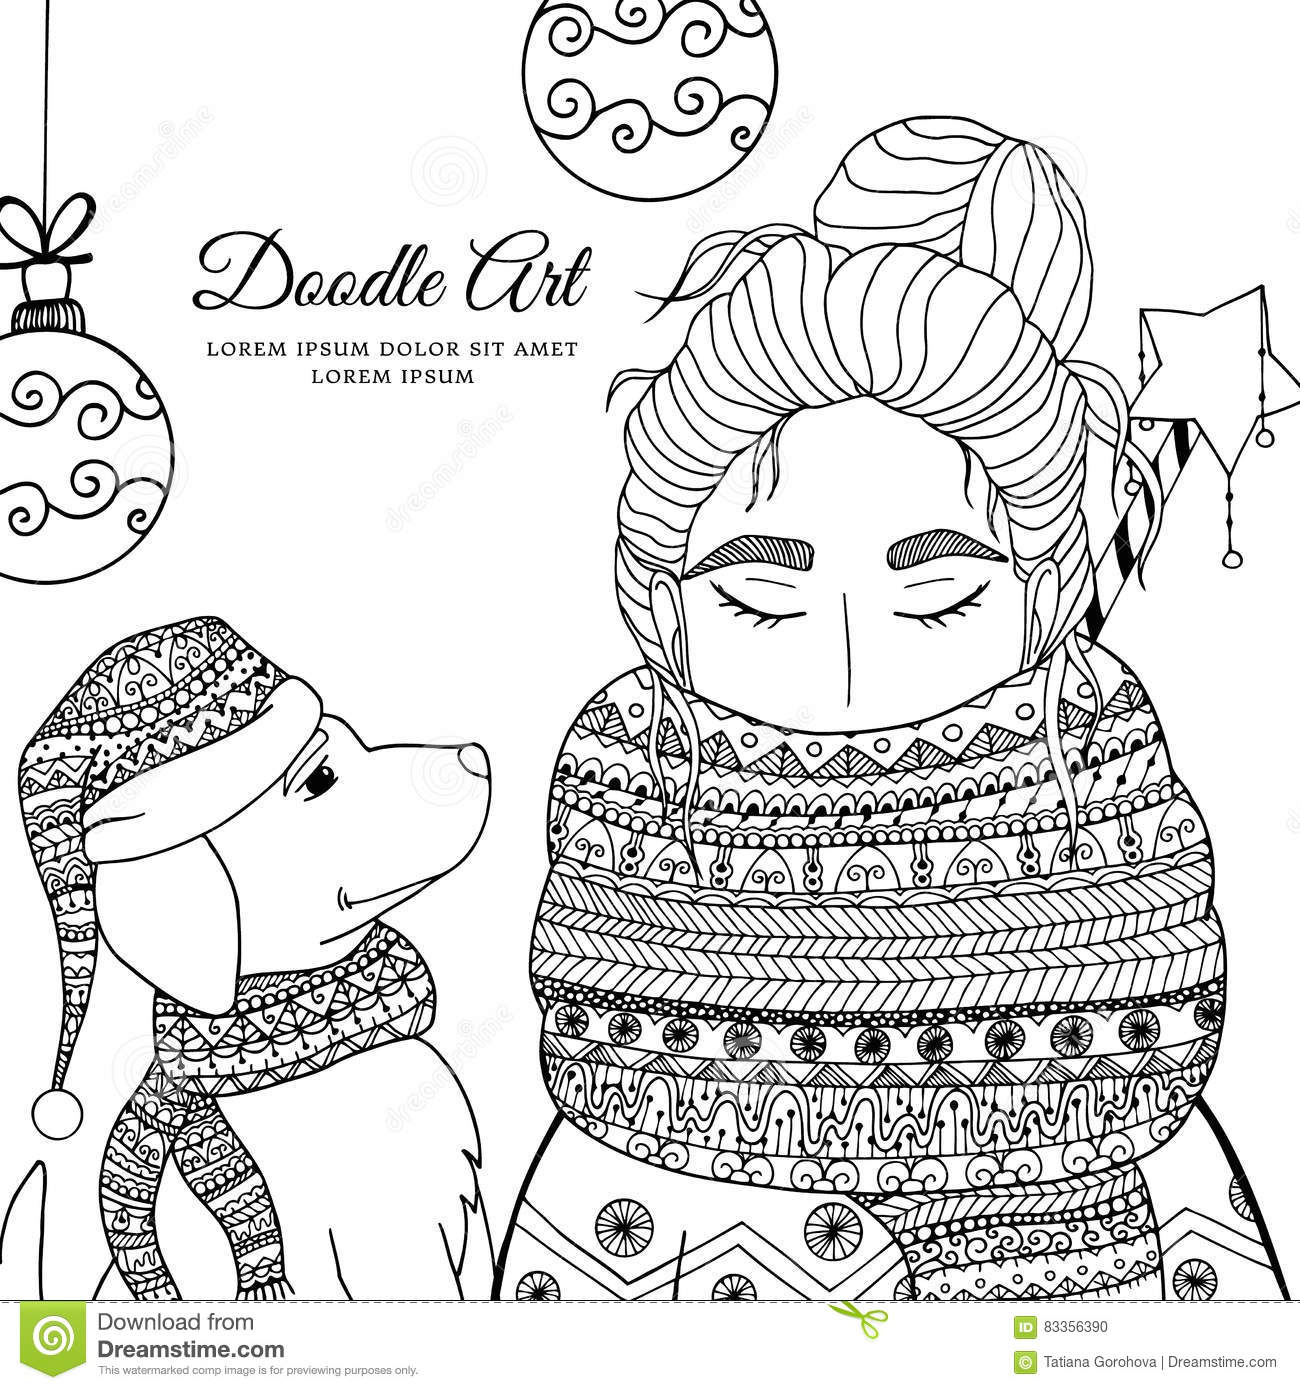 Labradoodle Dogs Coloring Pages Sketch Coloring Page